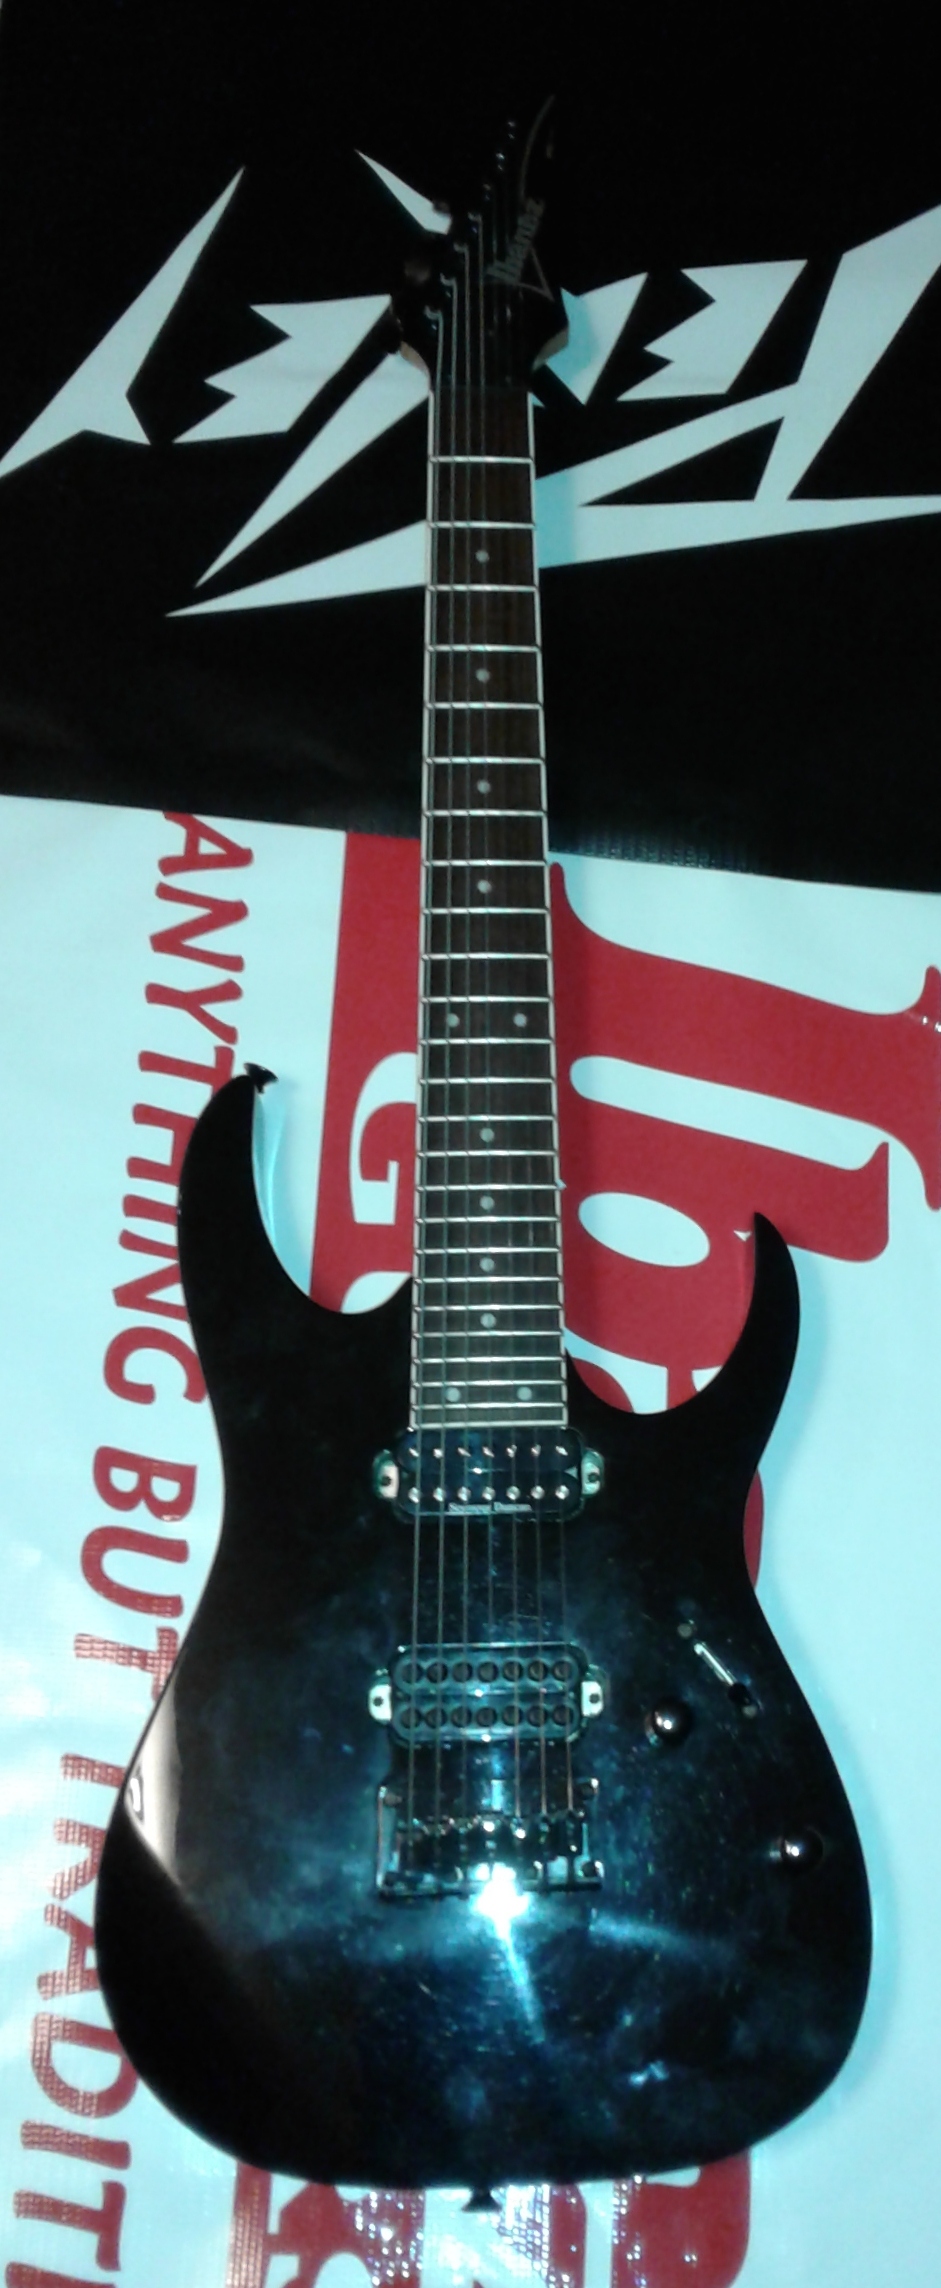 Your Weapons? (I sure hope they're Axes) (56k = Okay I guess. Maybe.)-ibanez-rg-7-string-jpg